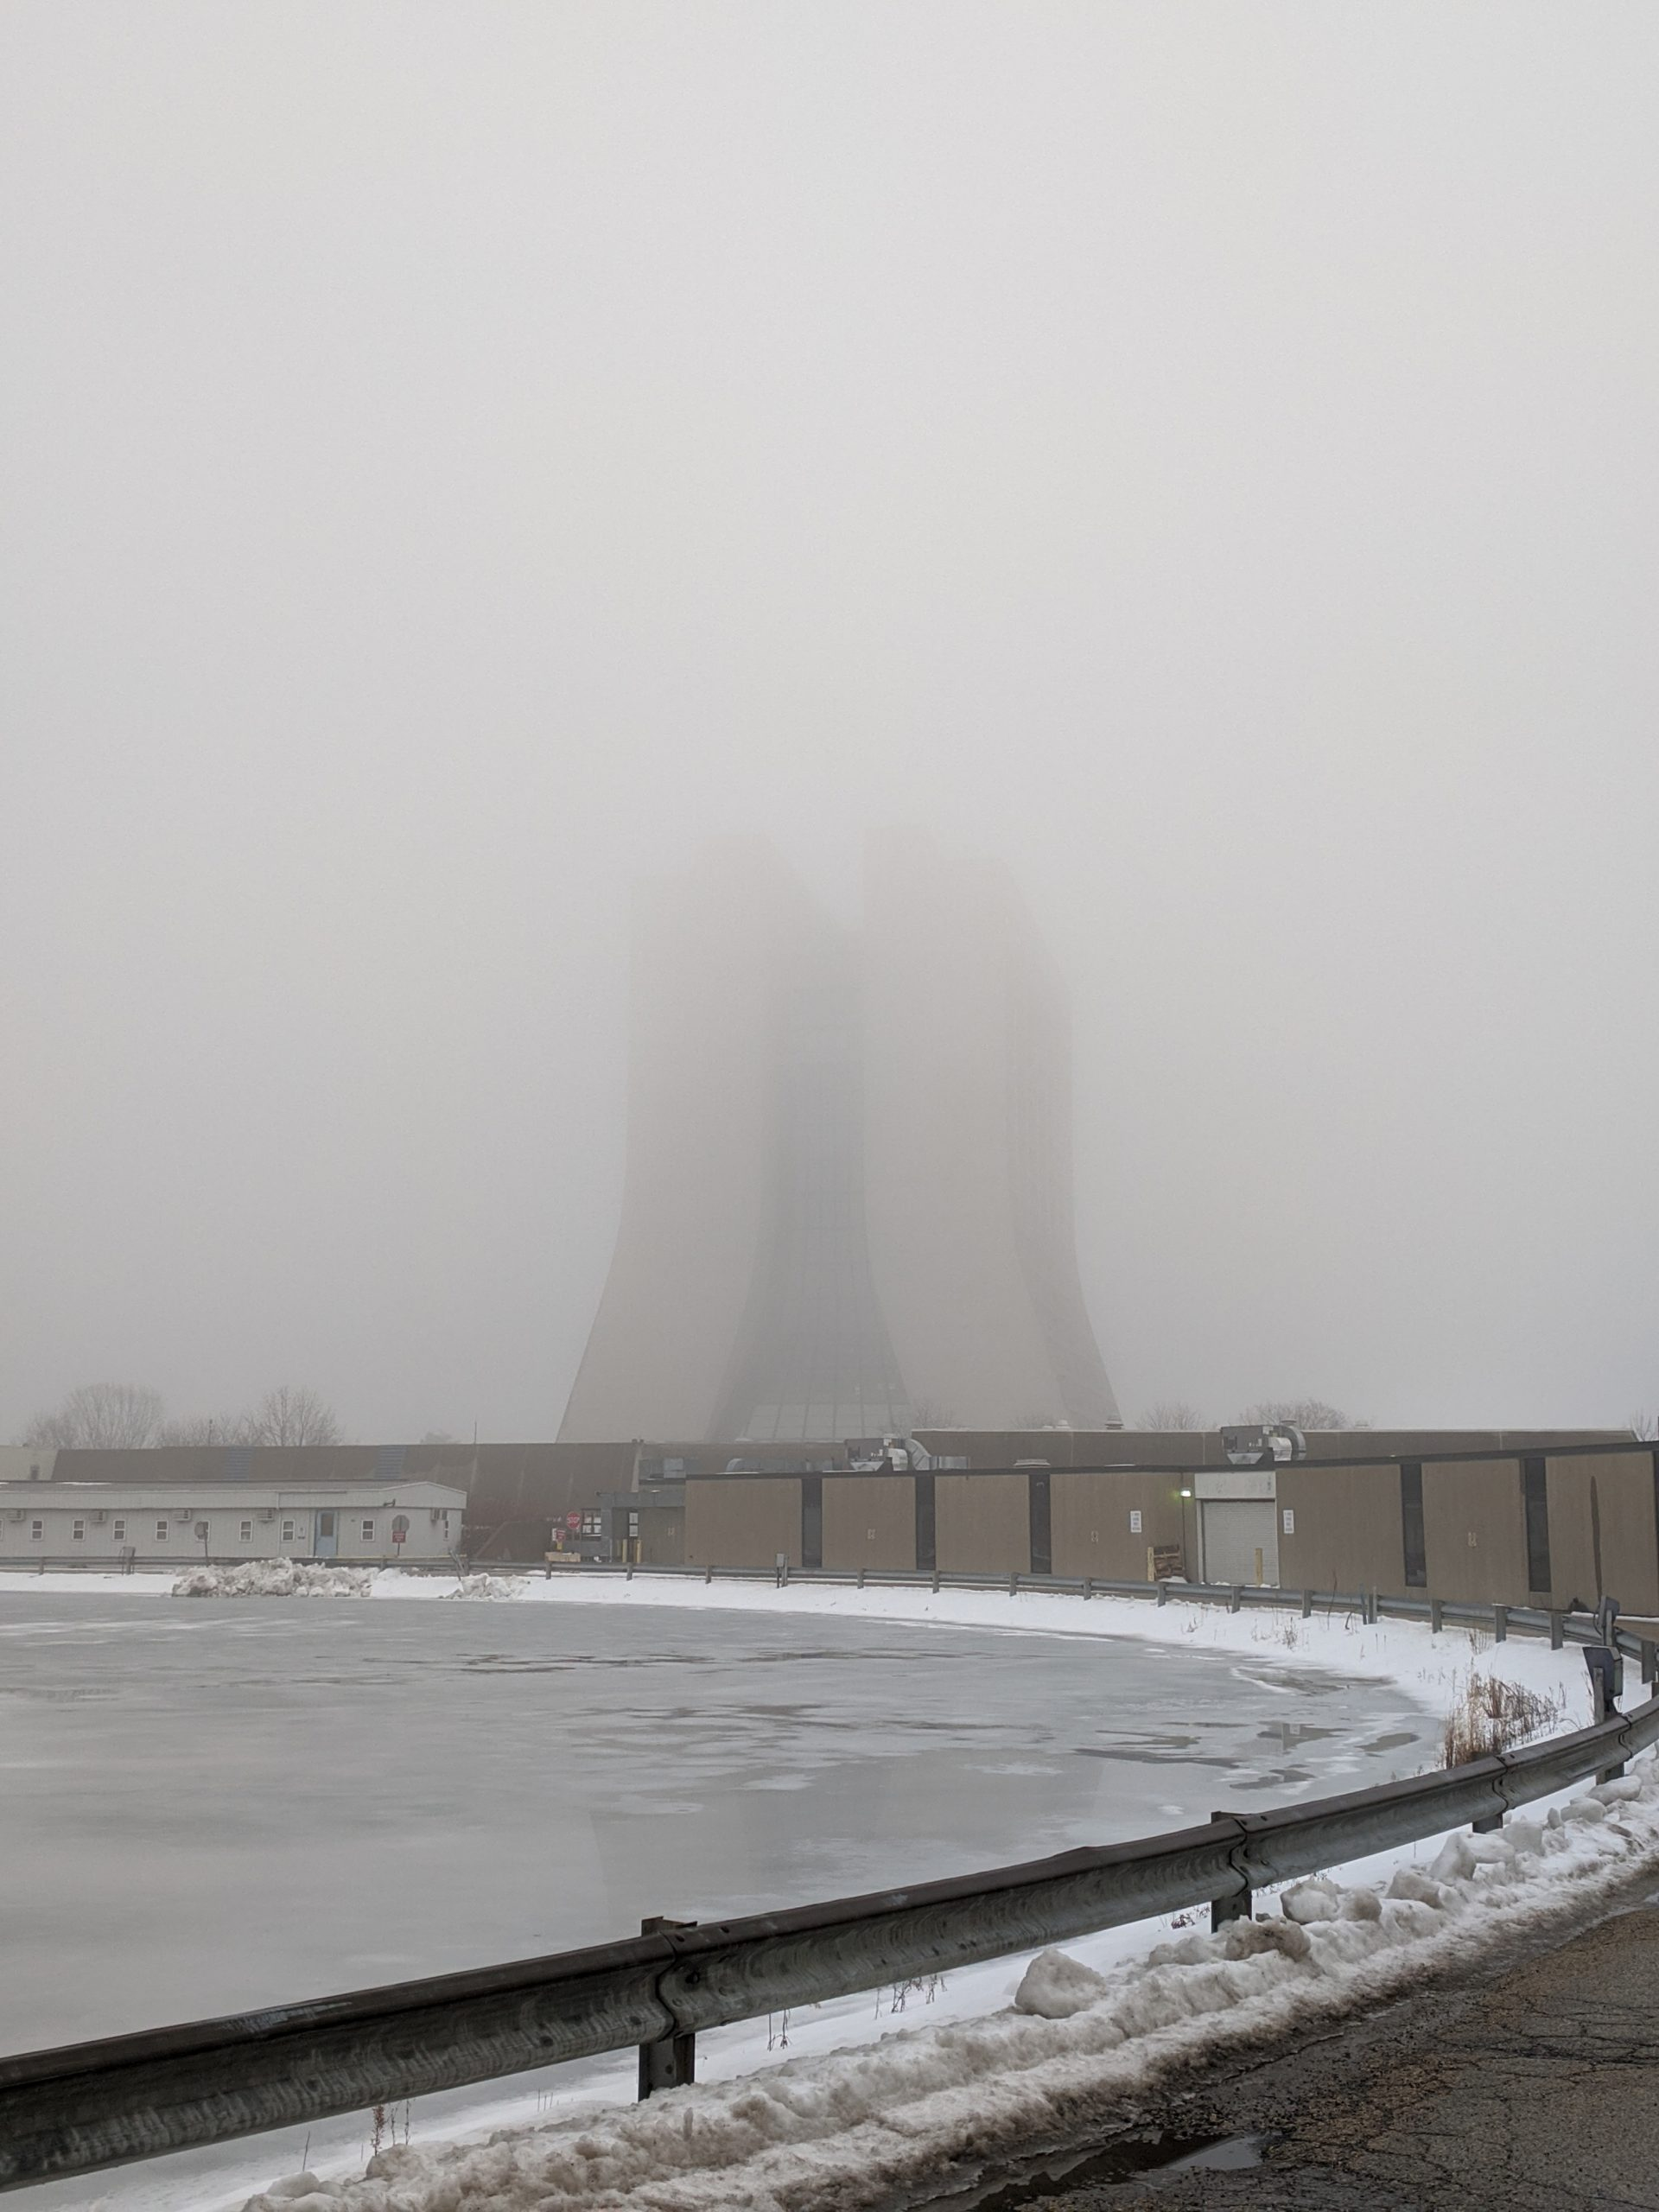 Wilson Hall is obscured by the fog on a January day. nature, winter, building, fog, Wilson Hall Photo: Mark Dilday